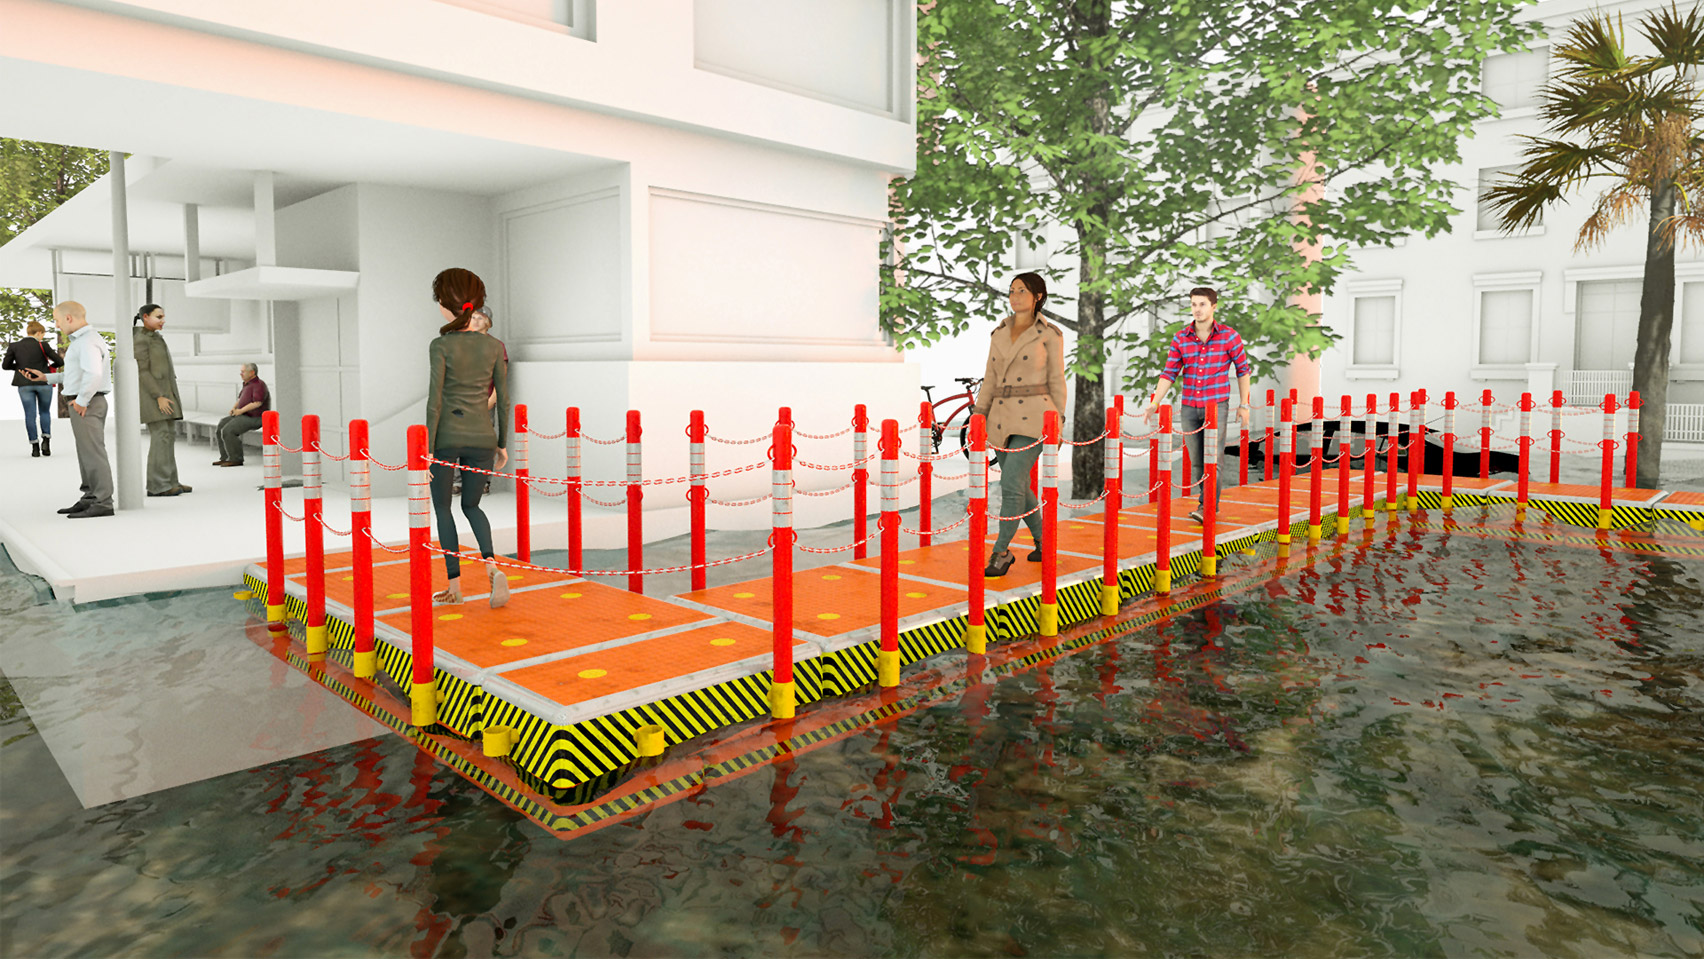 A visual of an emergency floating walkway for floods